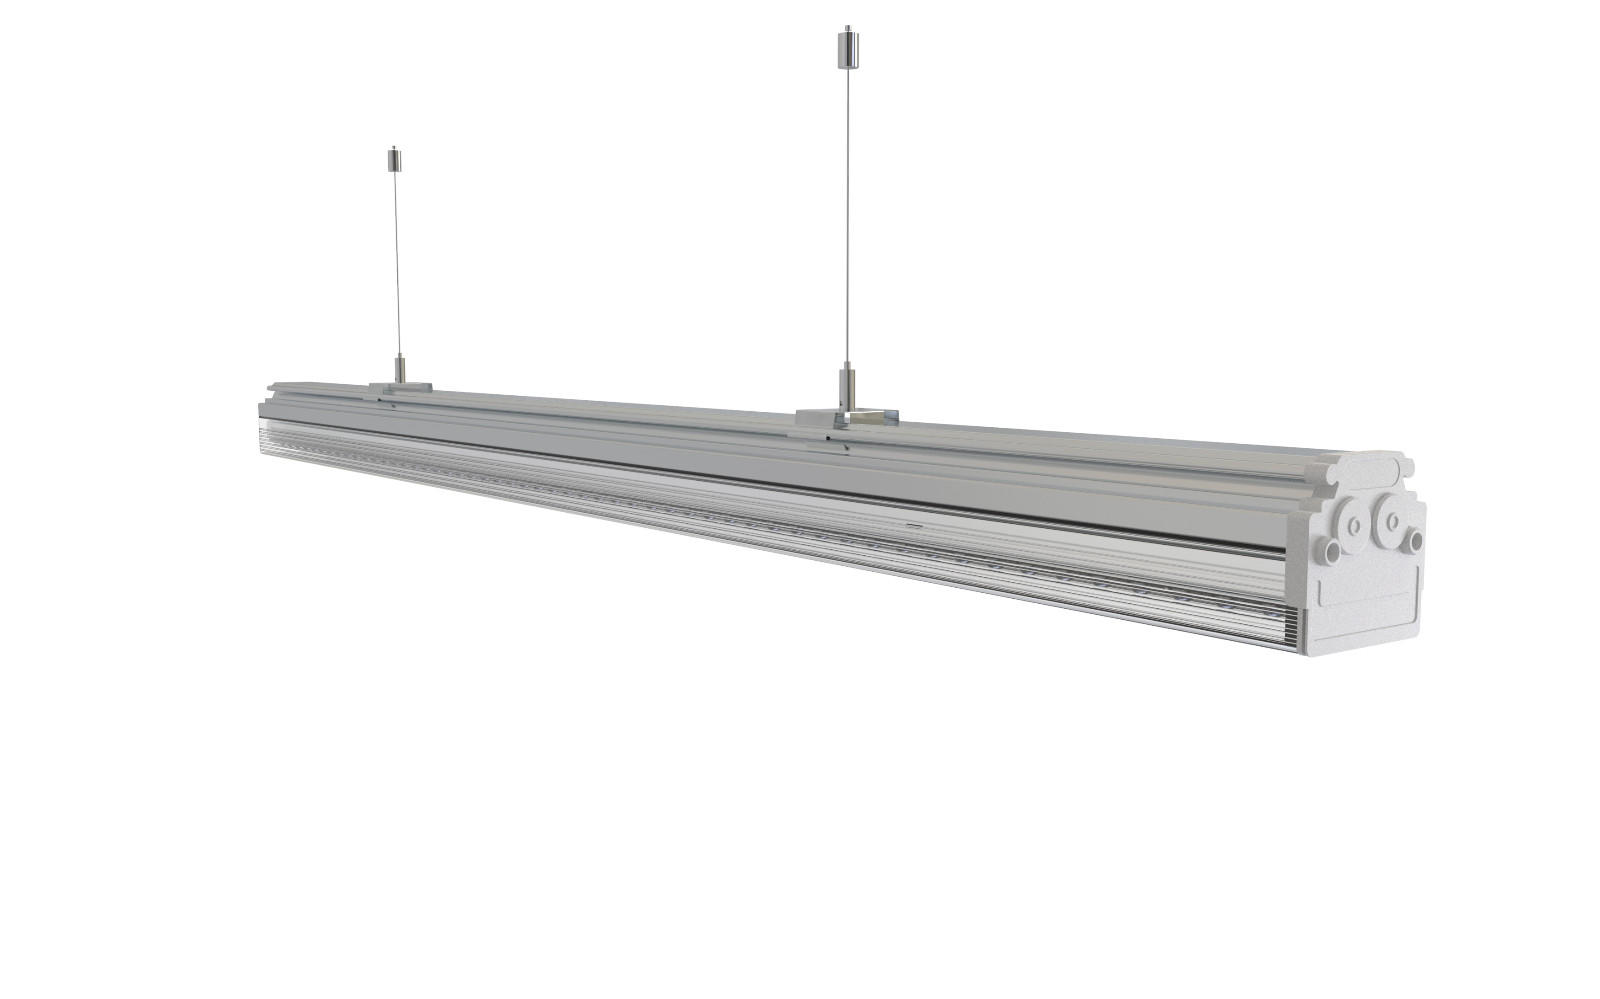 Dolight LED Panel Brand pro frosted cover linear lighting systems